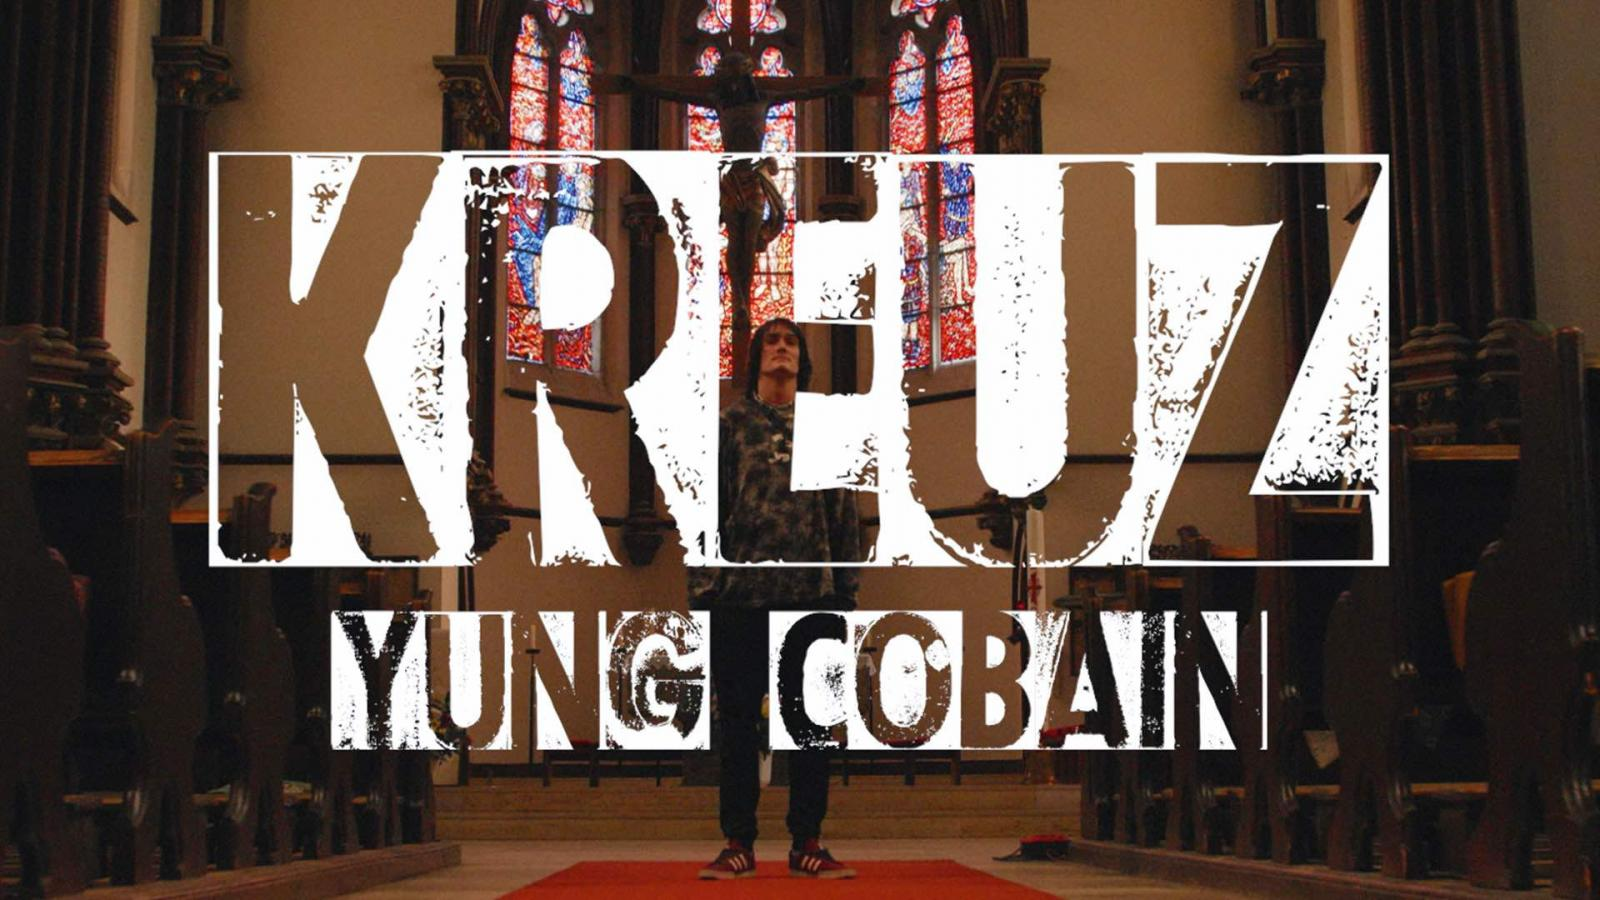 Upcoming: Yung Cobain - Kreuz (prod. By SACHY) [Video]